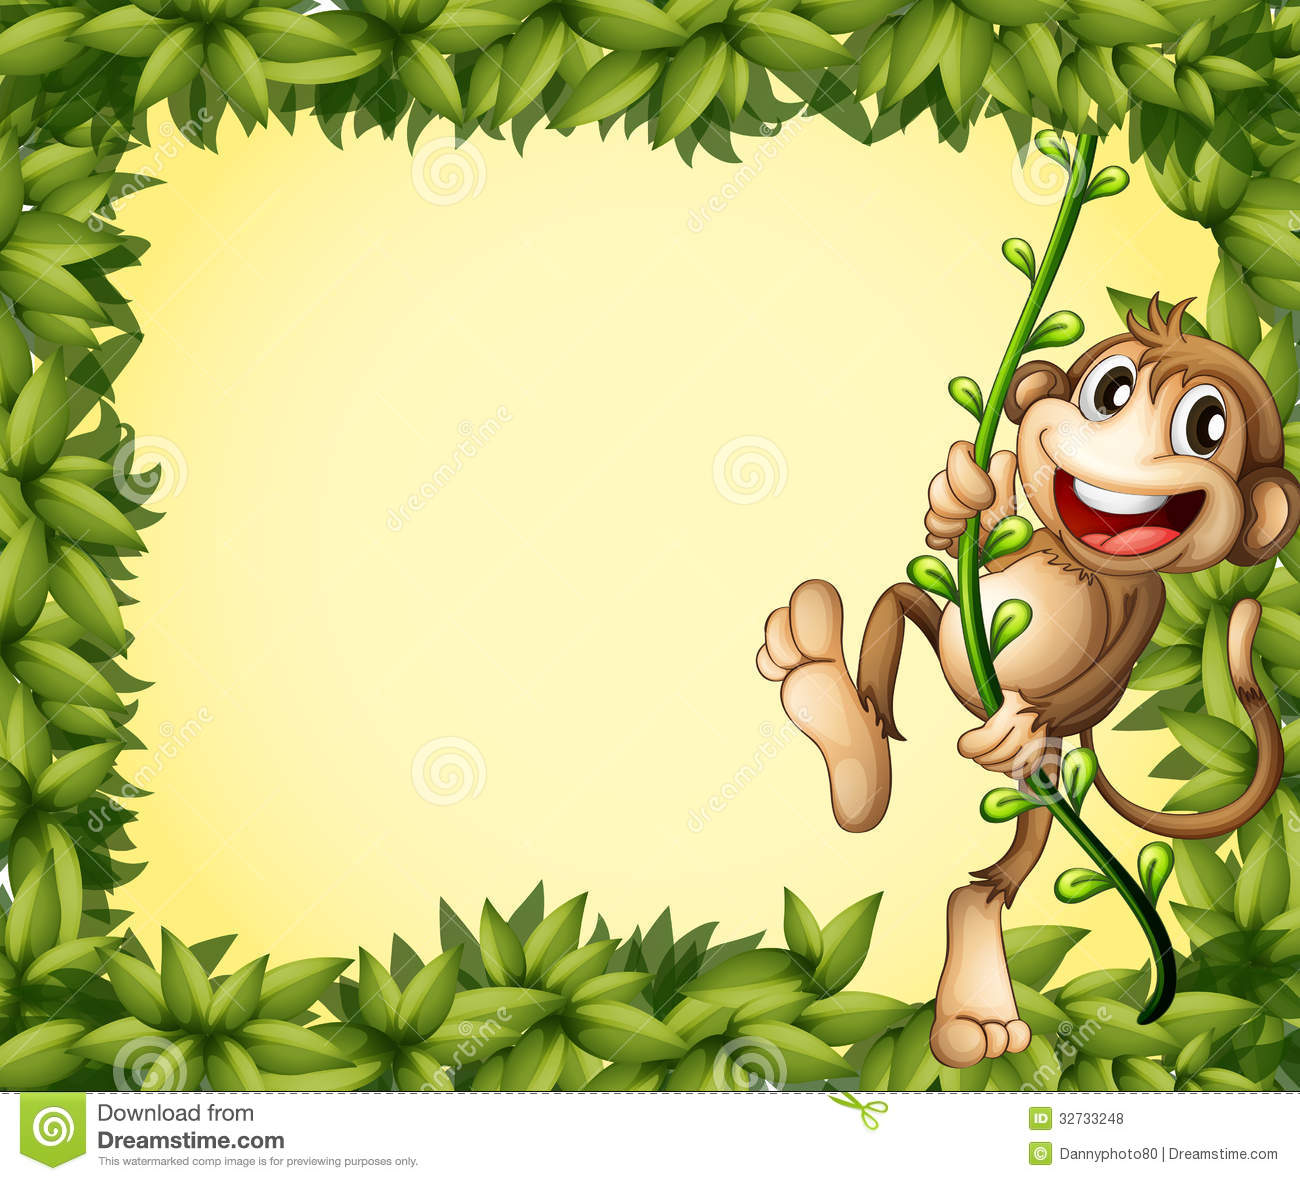 The Green Border With A Monkey Royalty Free Stock Photos